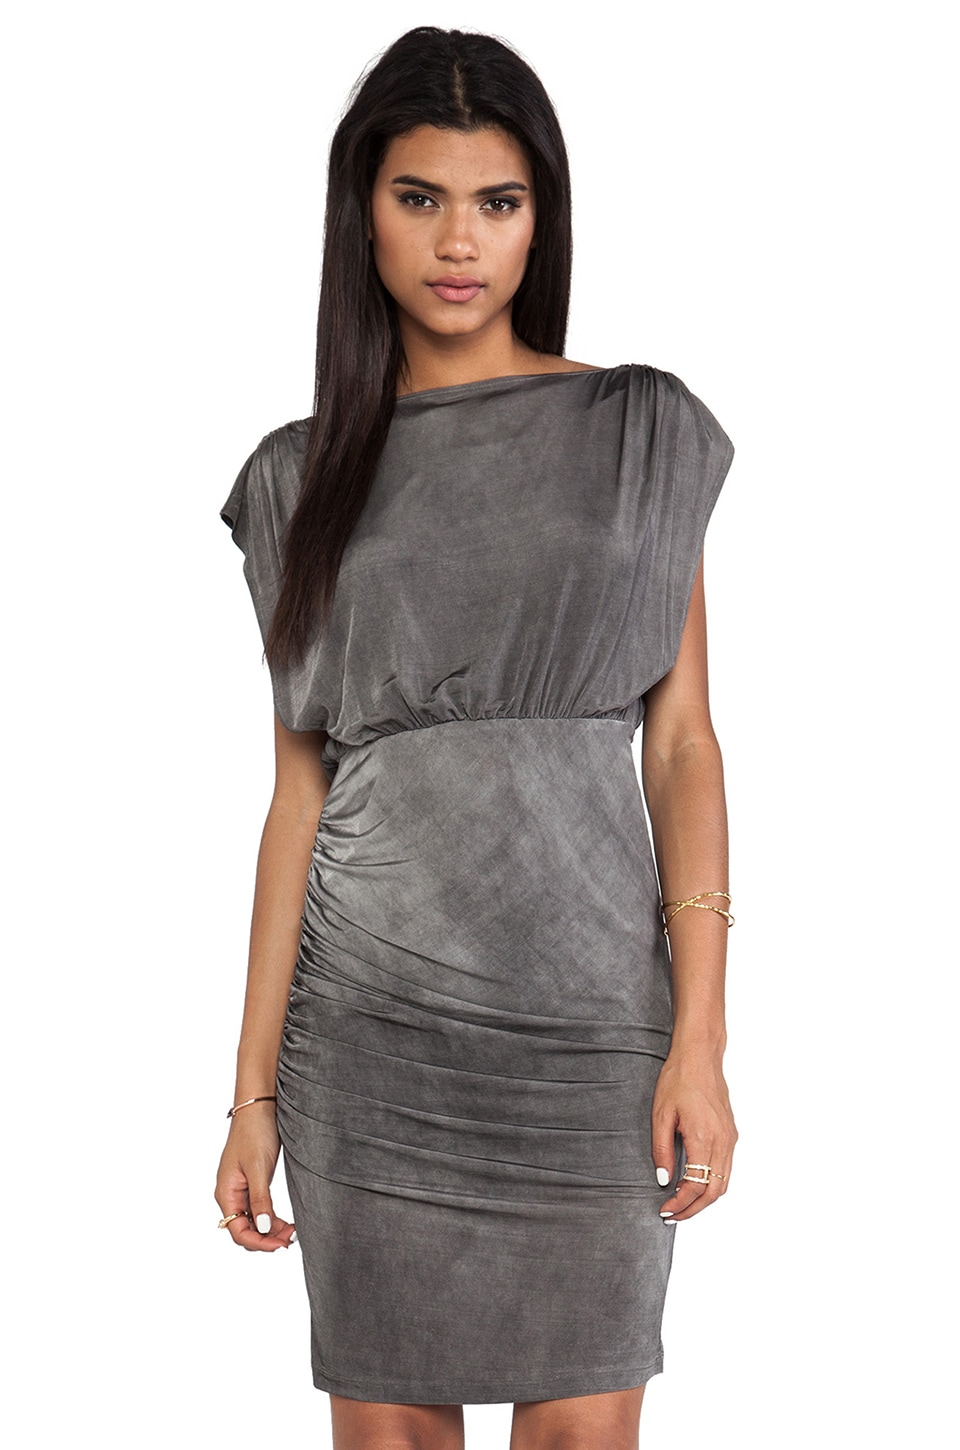 Alice + Olivia High Cowl Ruched Skirt Dress in Charcoal